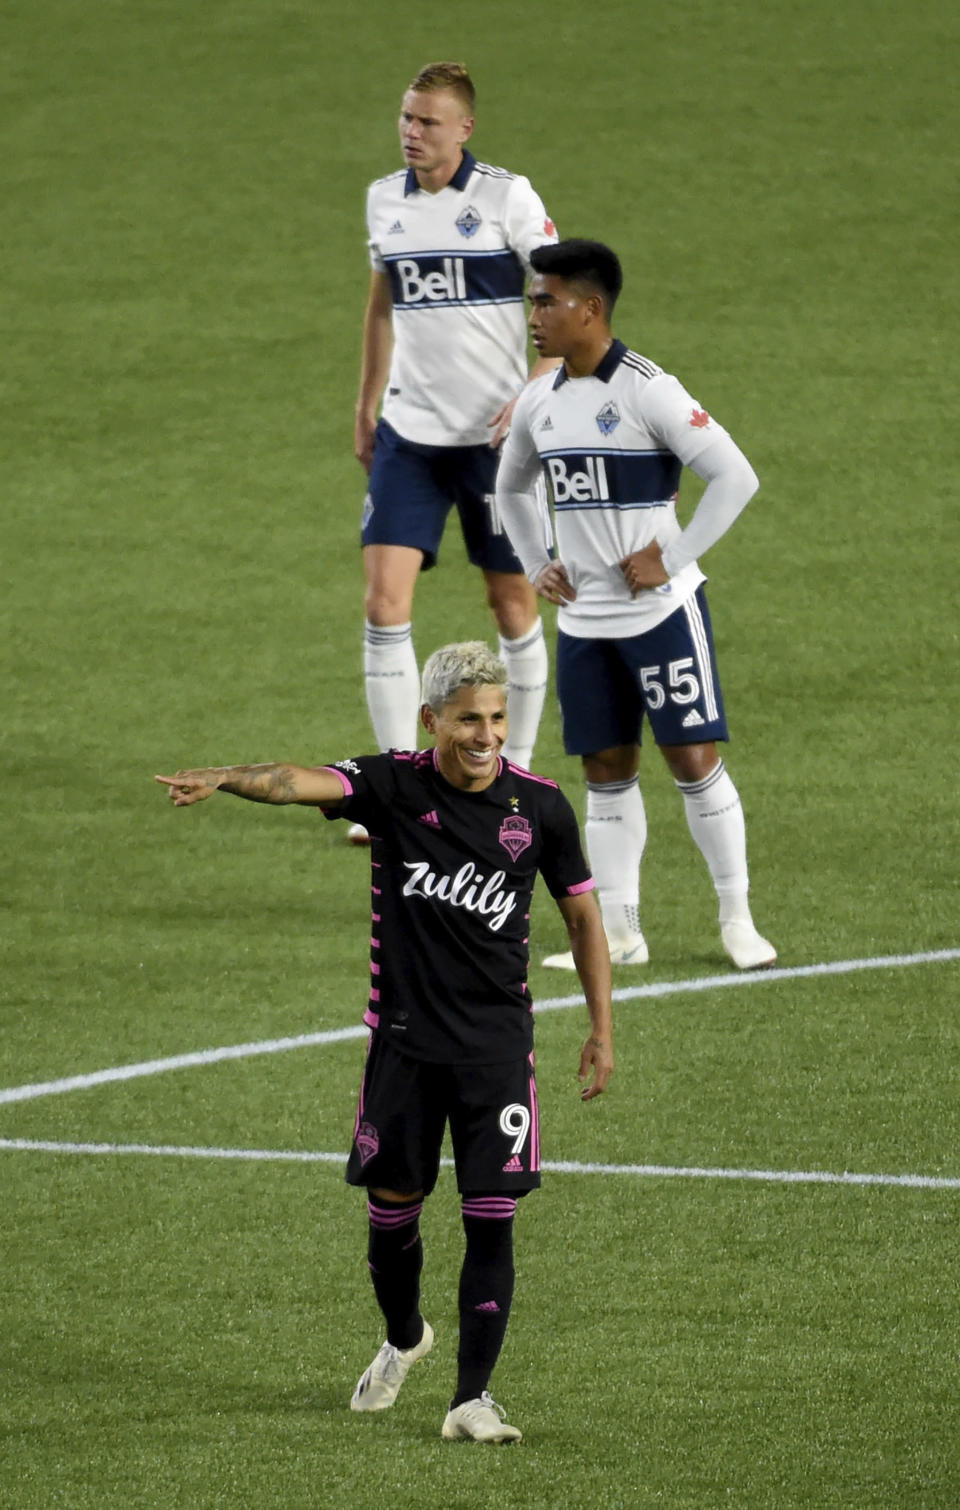 Seattle Sounders forward Raul Ruidiaz, bottom, celebrate after the Sounders scored a goal as Vancouver Whitecaps midfielder Michael Baldisimo, center, and midfielder Andy Rose, top, stand nearby during the second half of an MLS soccer match in Portland, Ore., Tuesday, Oct. 27, 2020. (AP Photo/Steve Dykes)